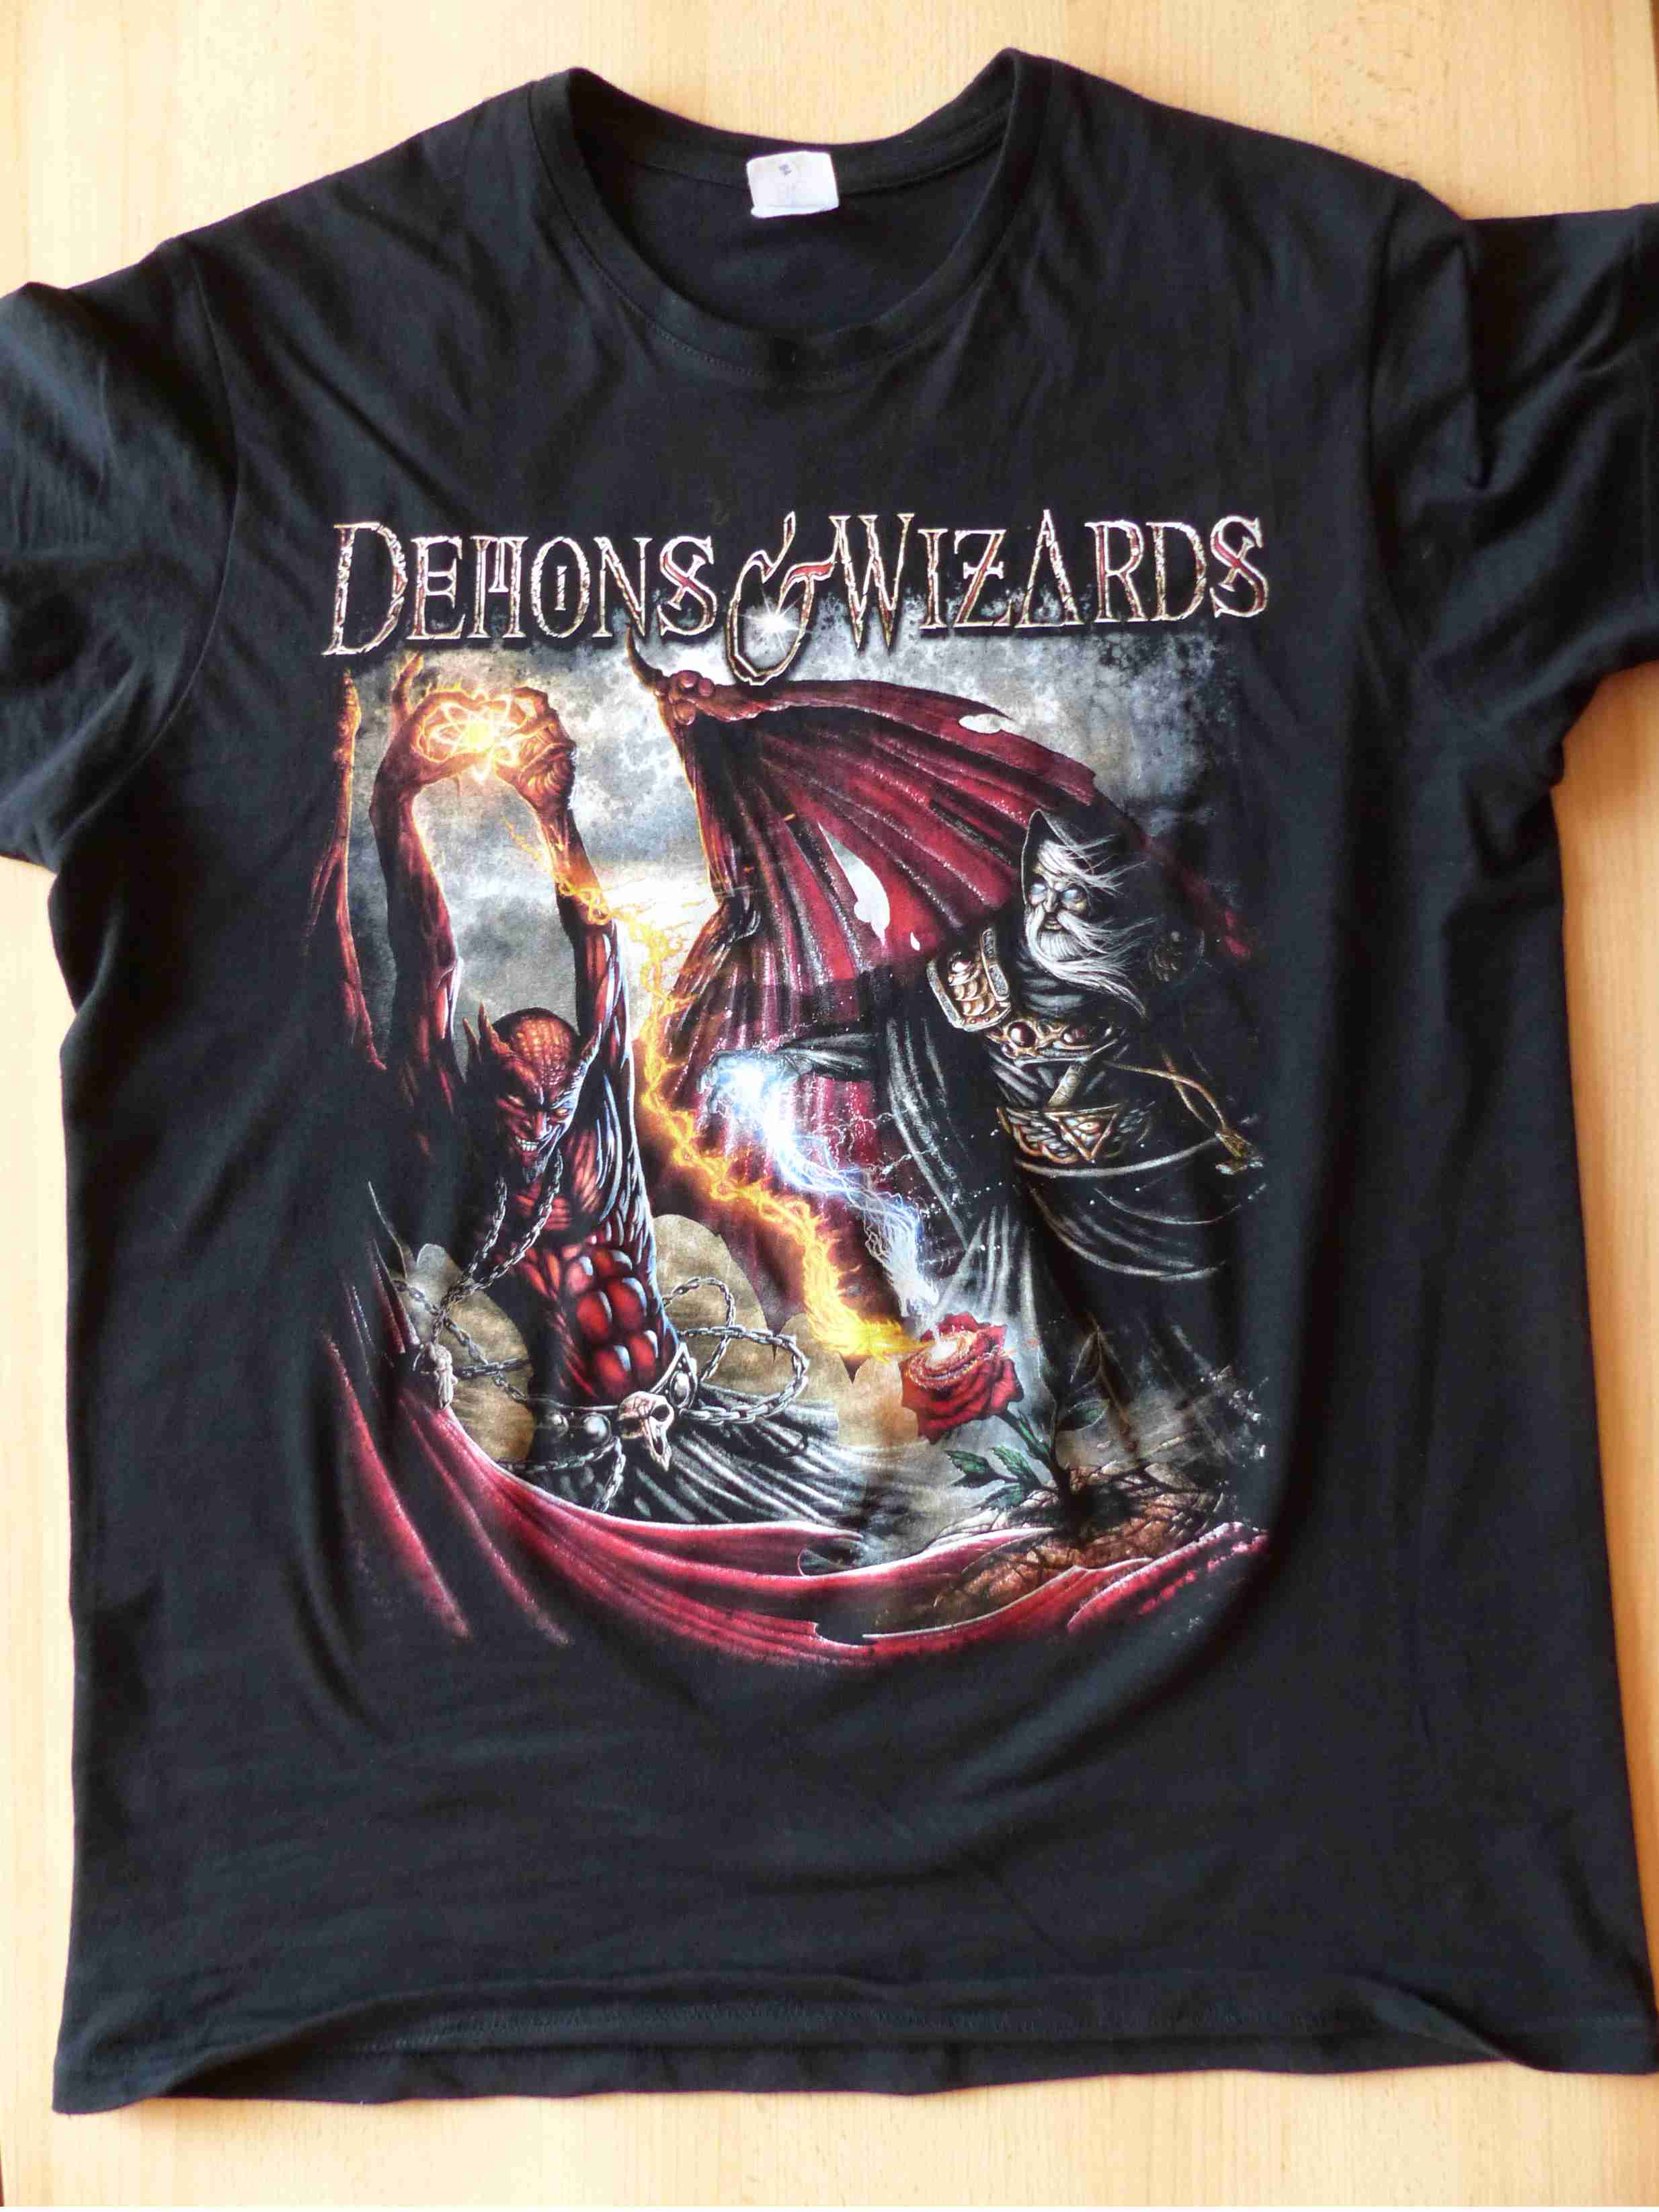 Demon-Wizards-Touched-by-the-Crimson-King-vorn.jpg